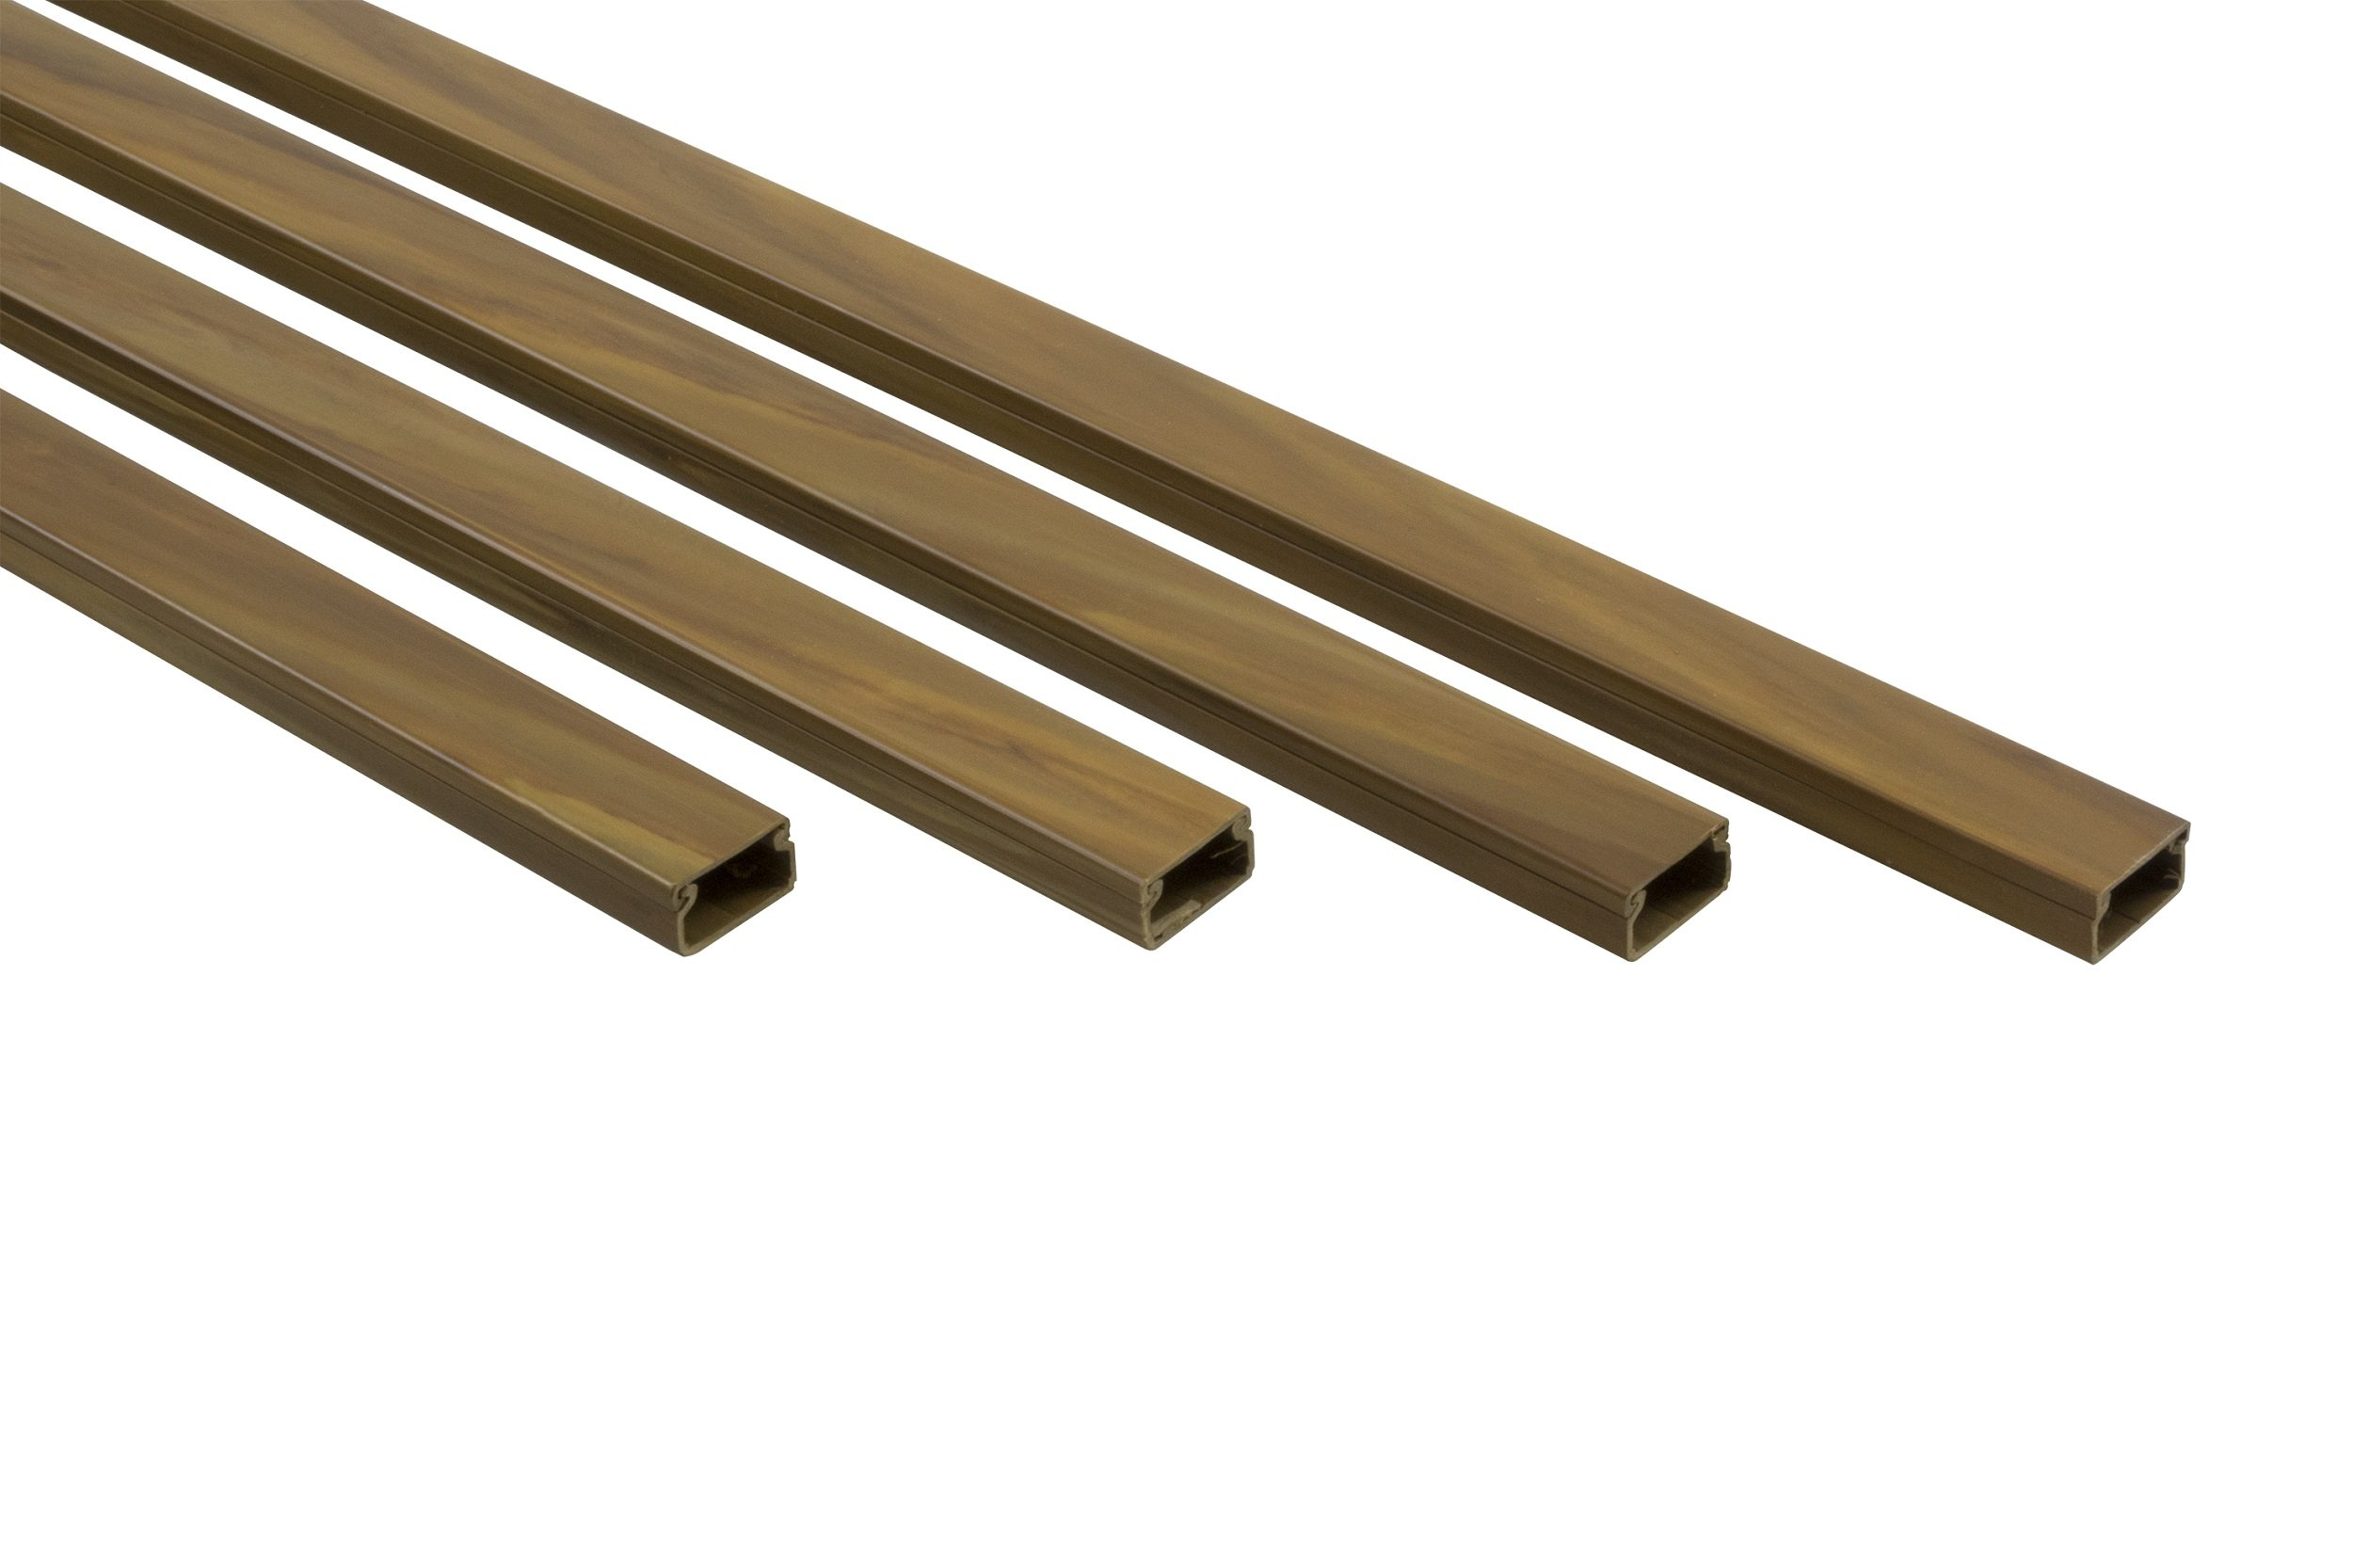 10 ft Cable Raceway Kit for Concealing and Cord Organizing - Brown Wood Look 0.78x0.39inches 4x30inch strips